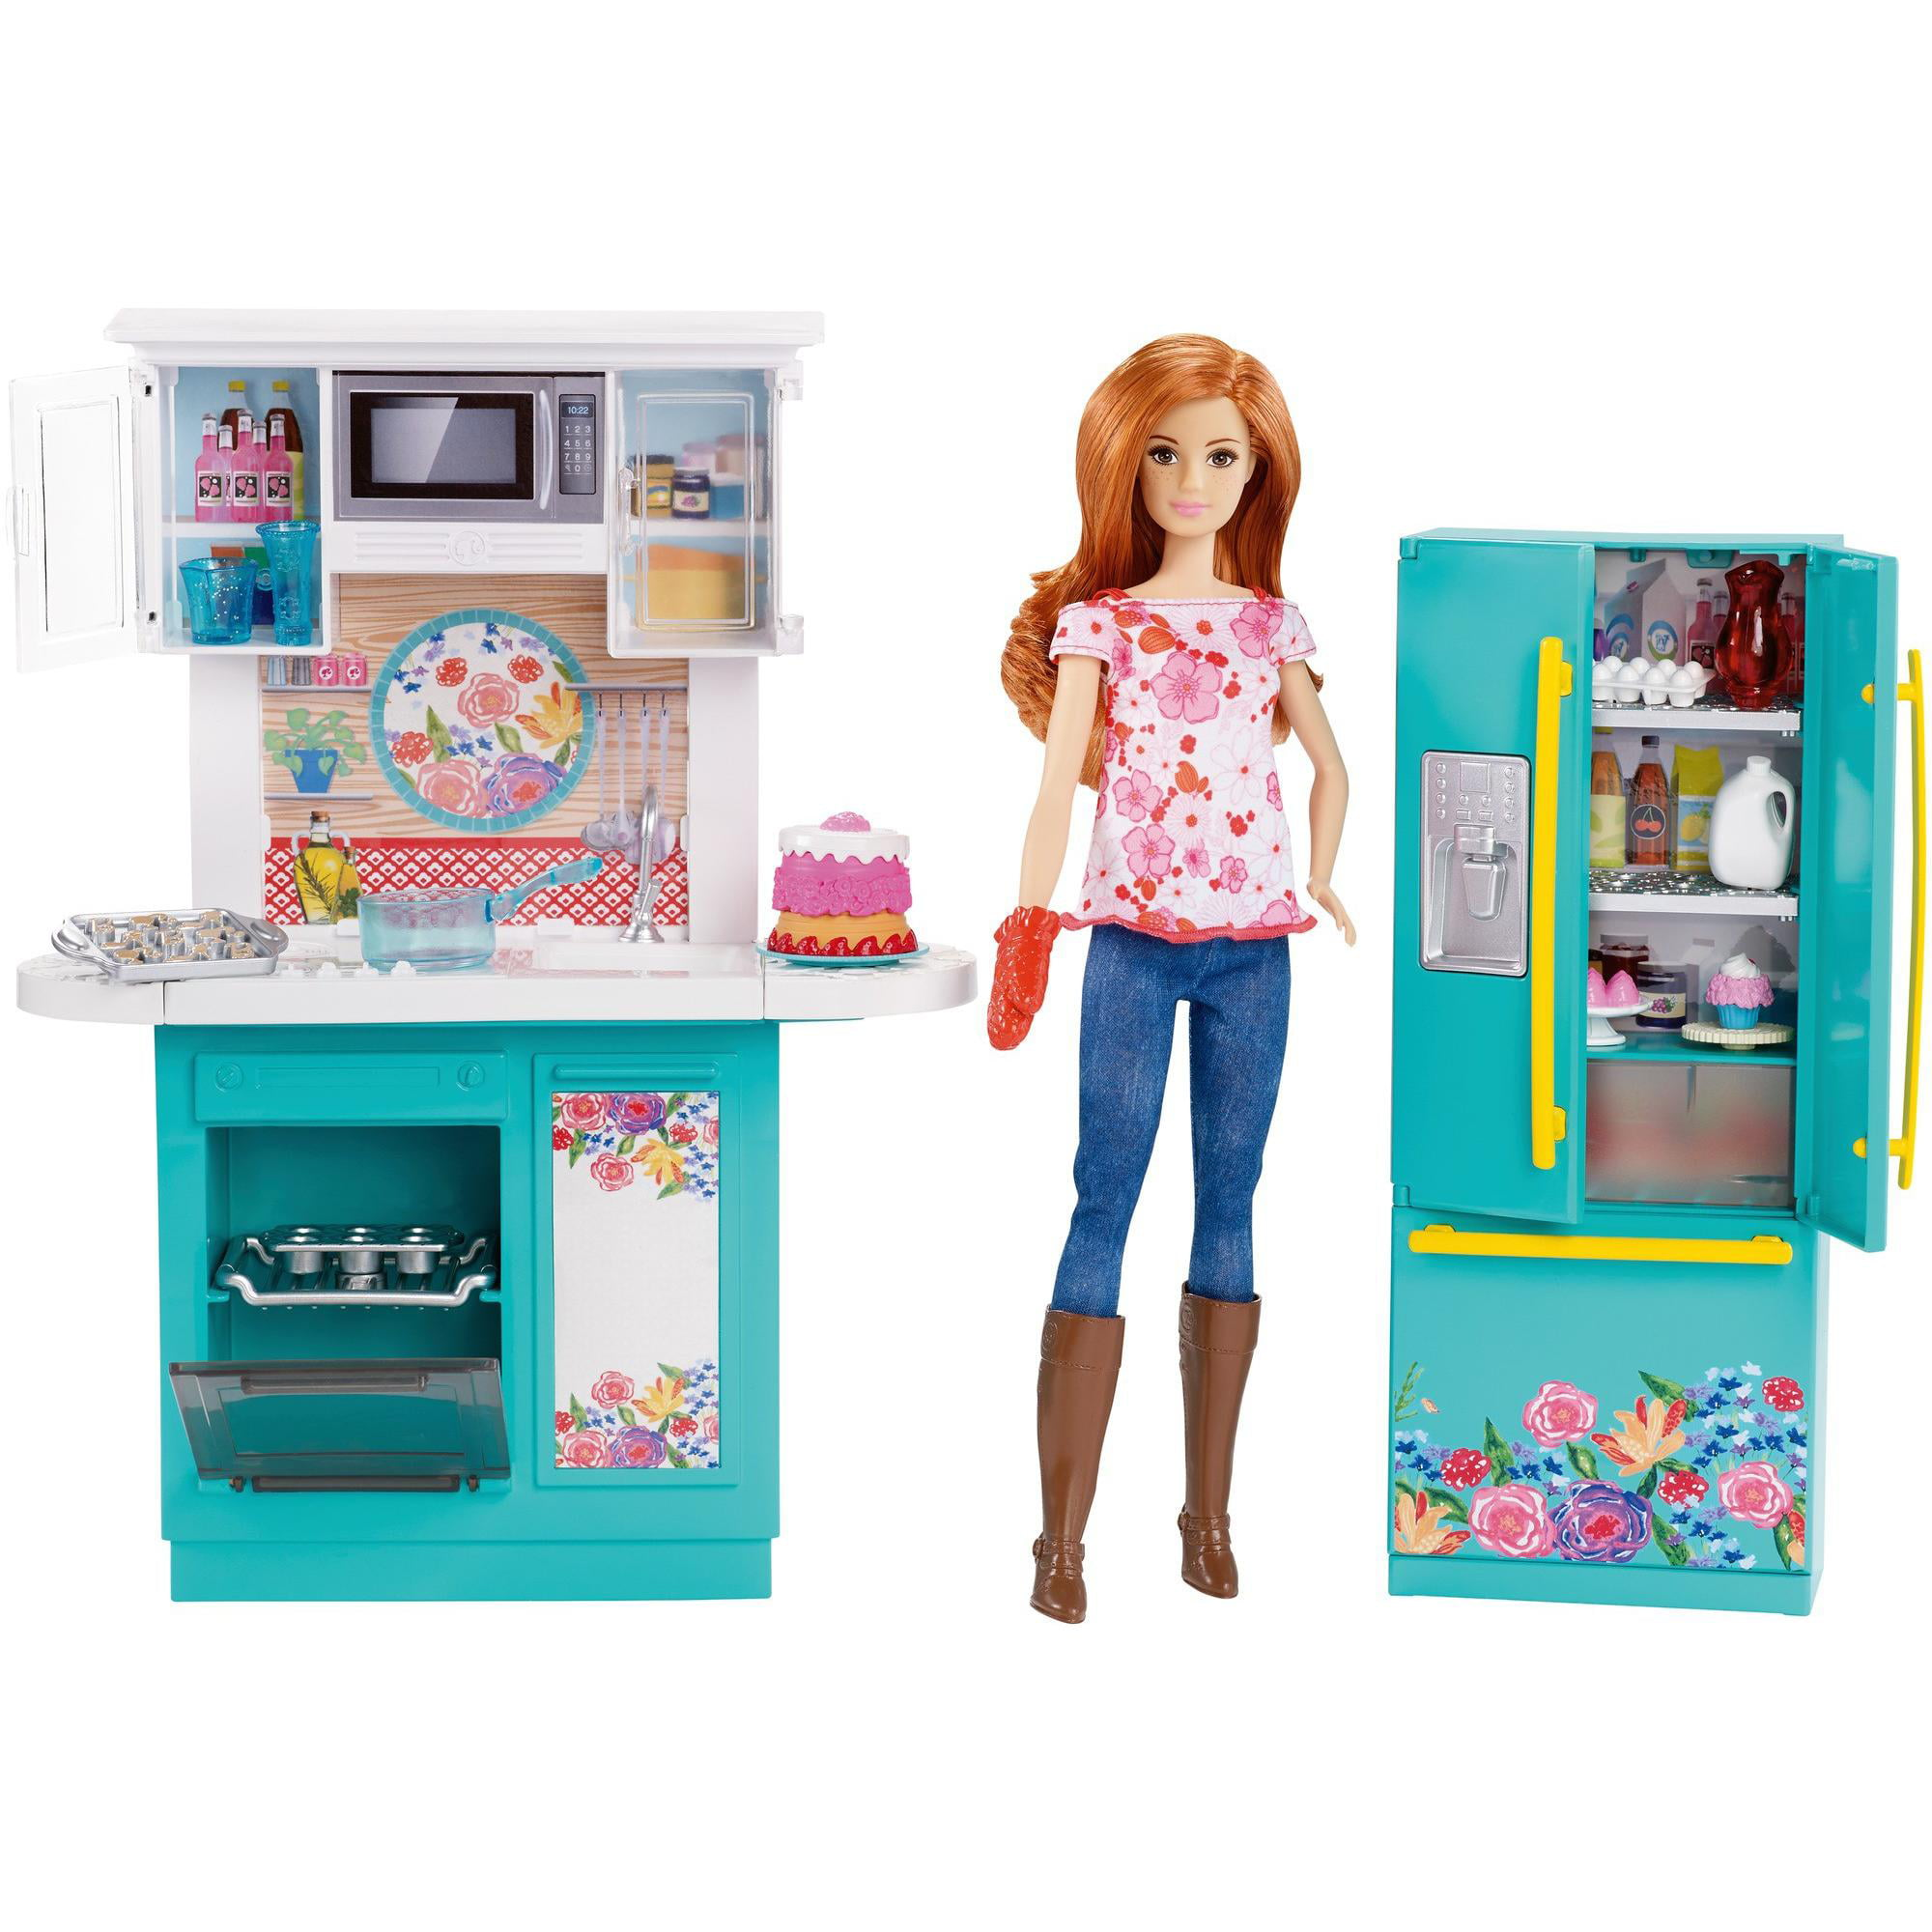 Barbie Pioneer Woman Ree Drummond Kitchen Playset With Cooking Chef